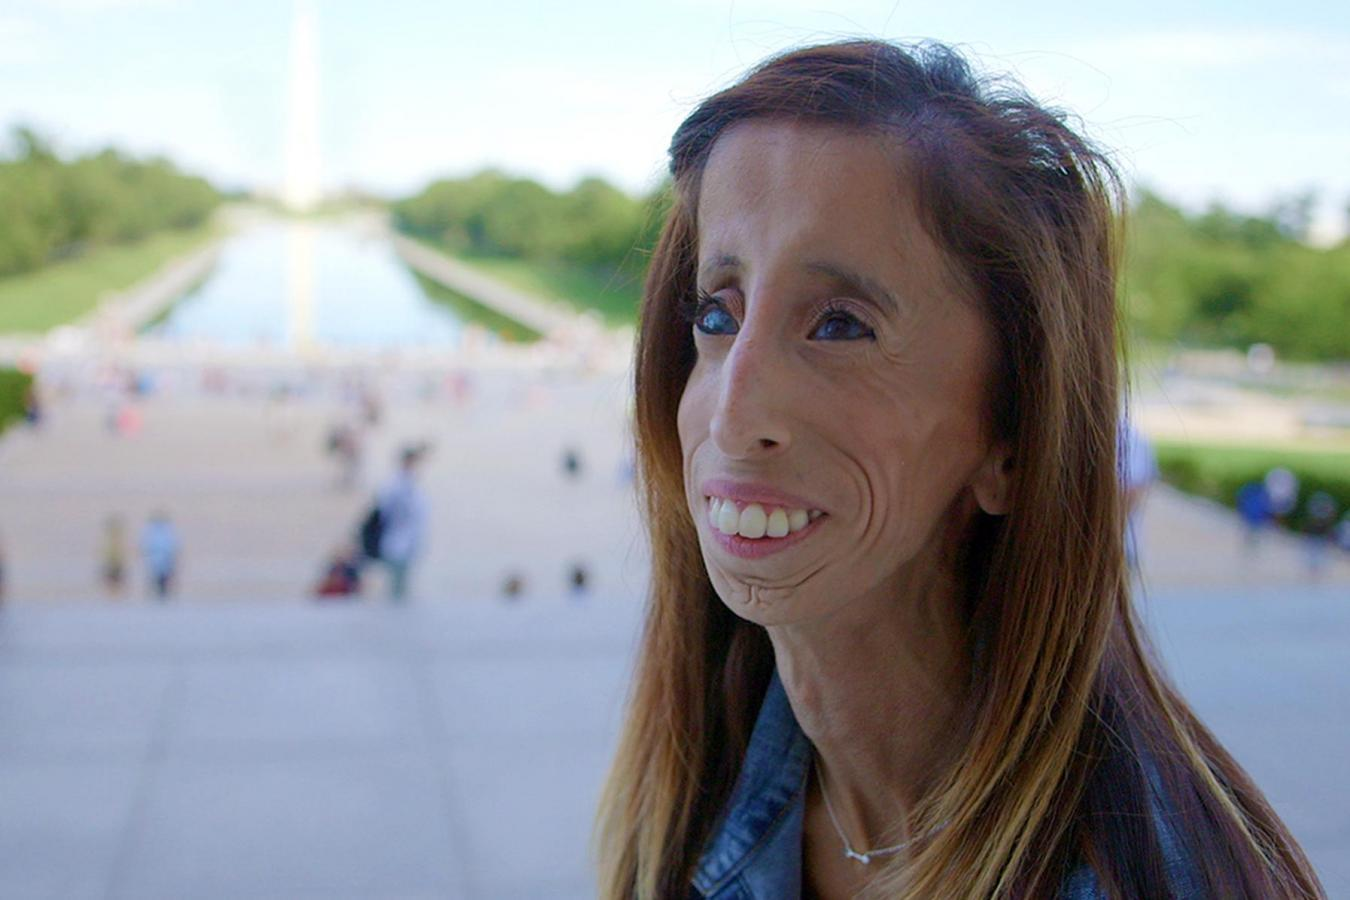 IndieWire - Cinedigm Will Release 'A Brave Heart: The Lizzie Velásquez Story' on September 25